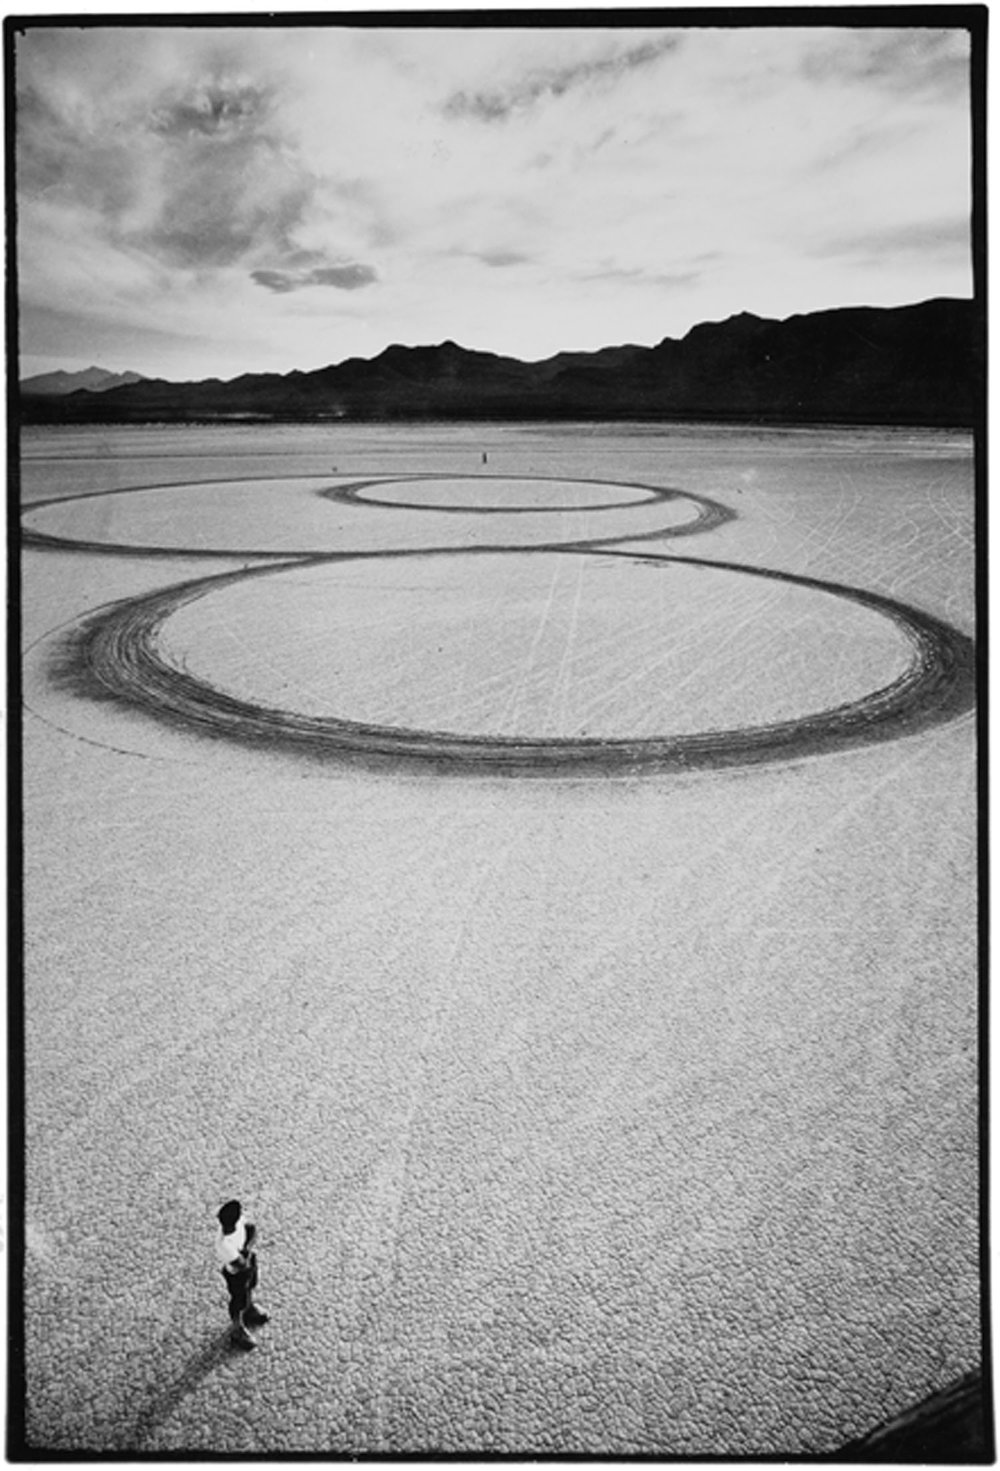 08_Michael_Heizer_Circular_Surface_1970.jpg